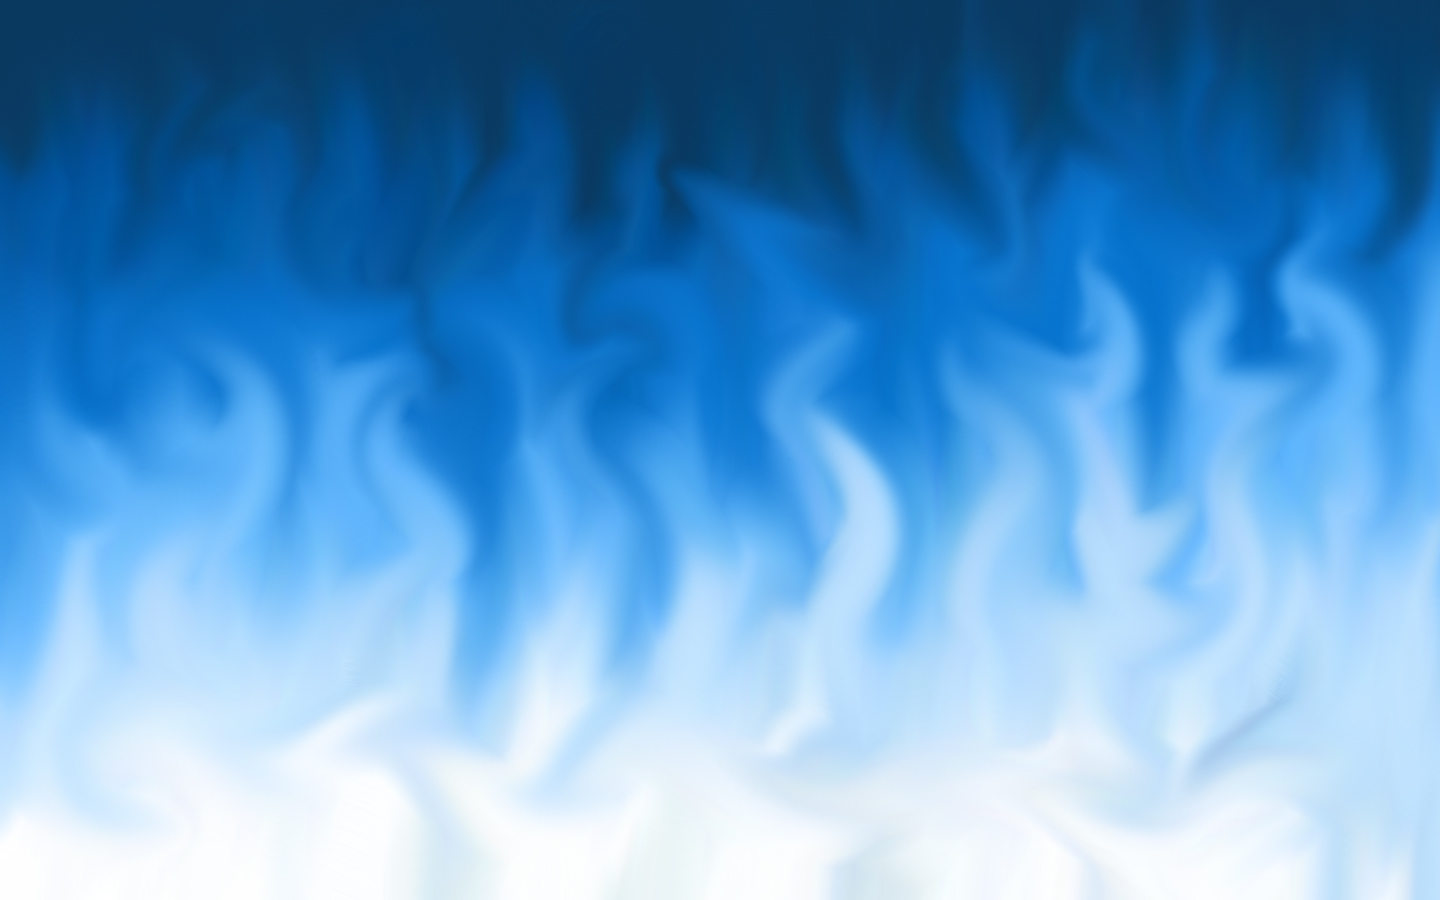 Blue Fire Background by TaintedWing jpg 1440x900